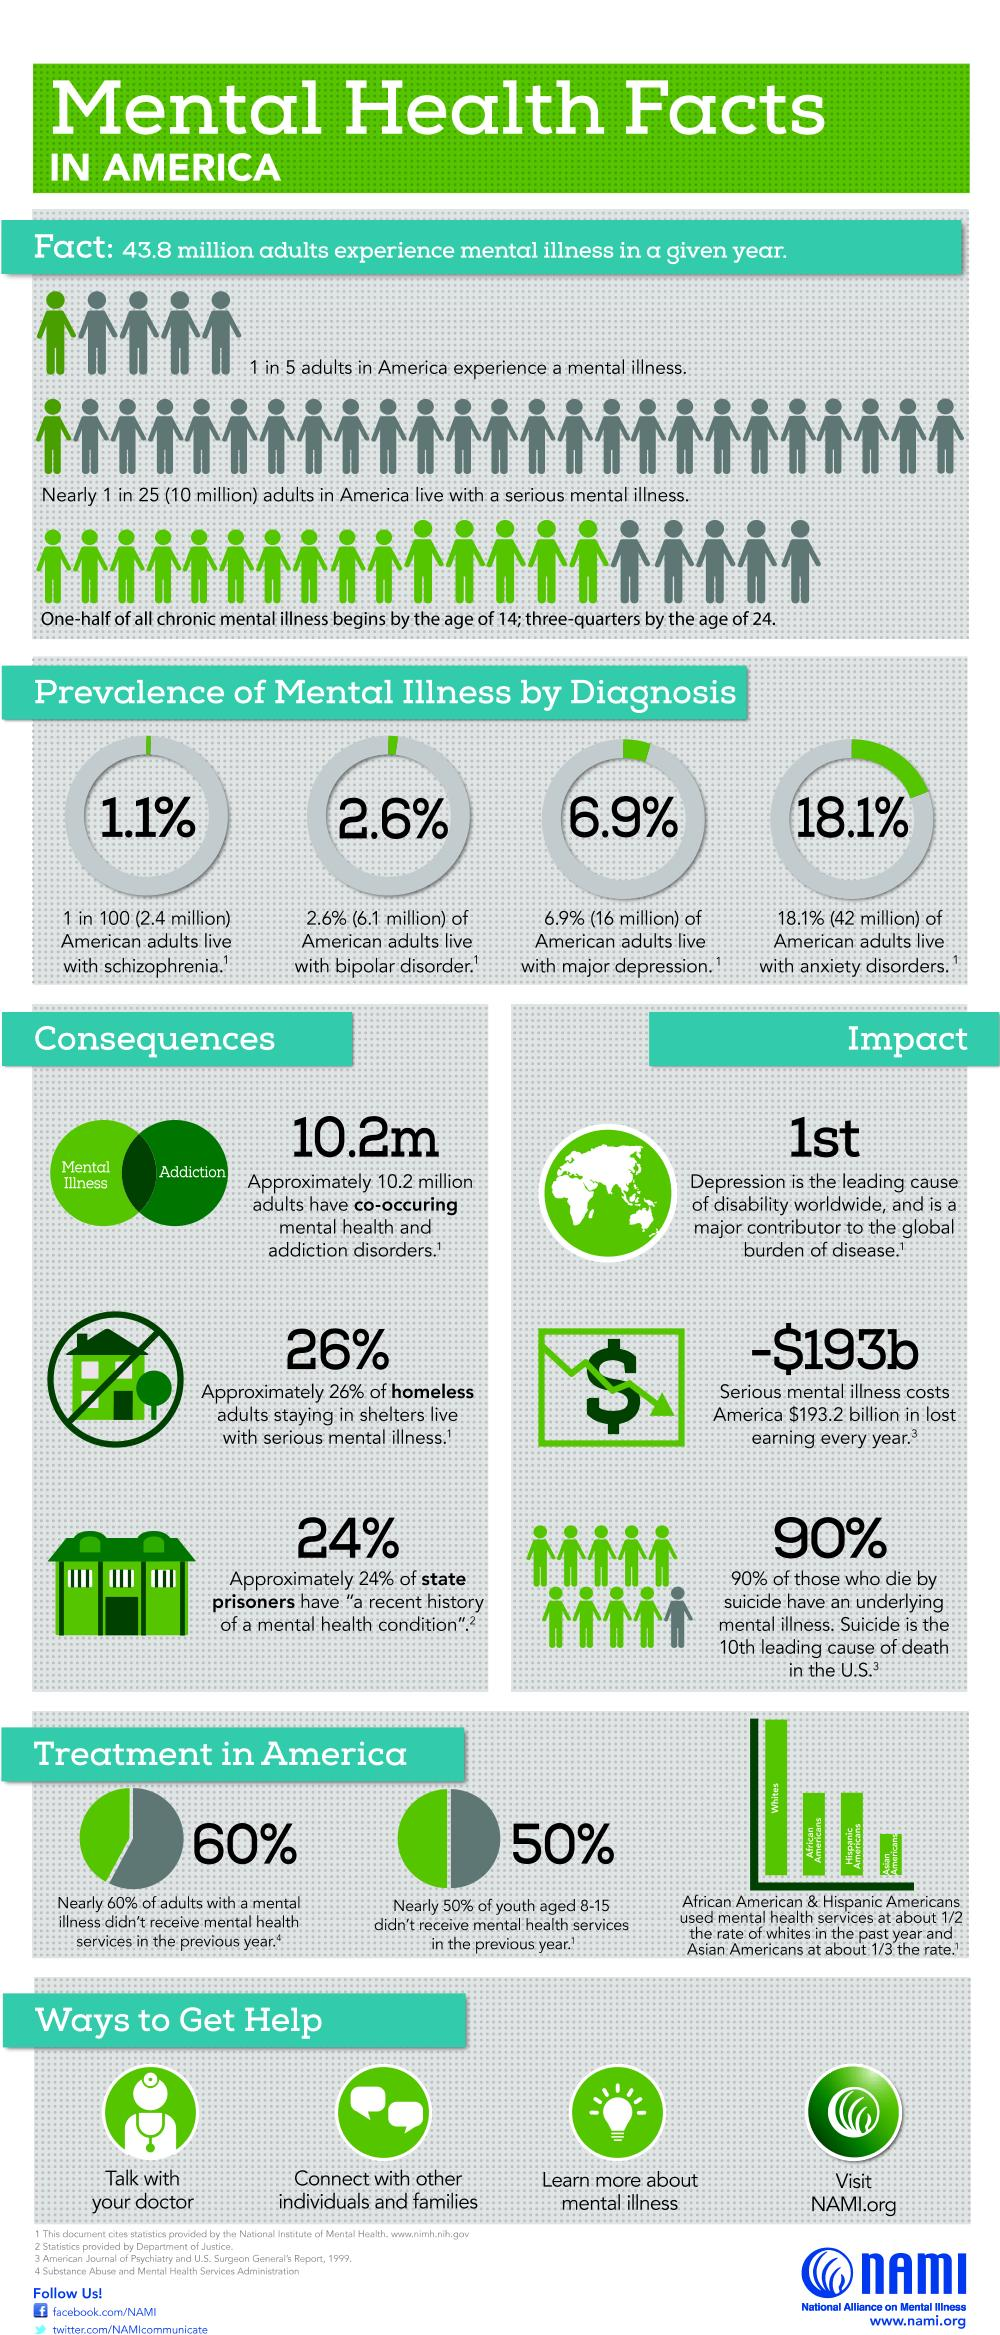 Mental health facts in America